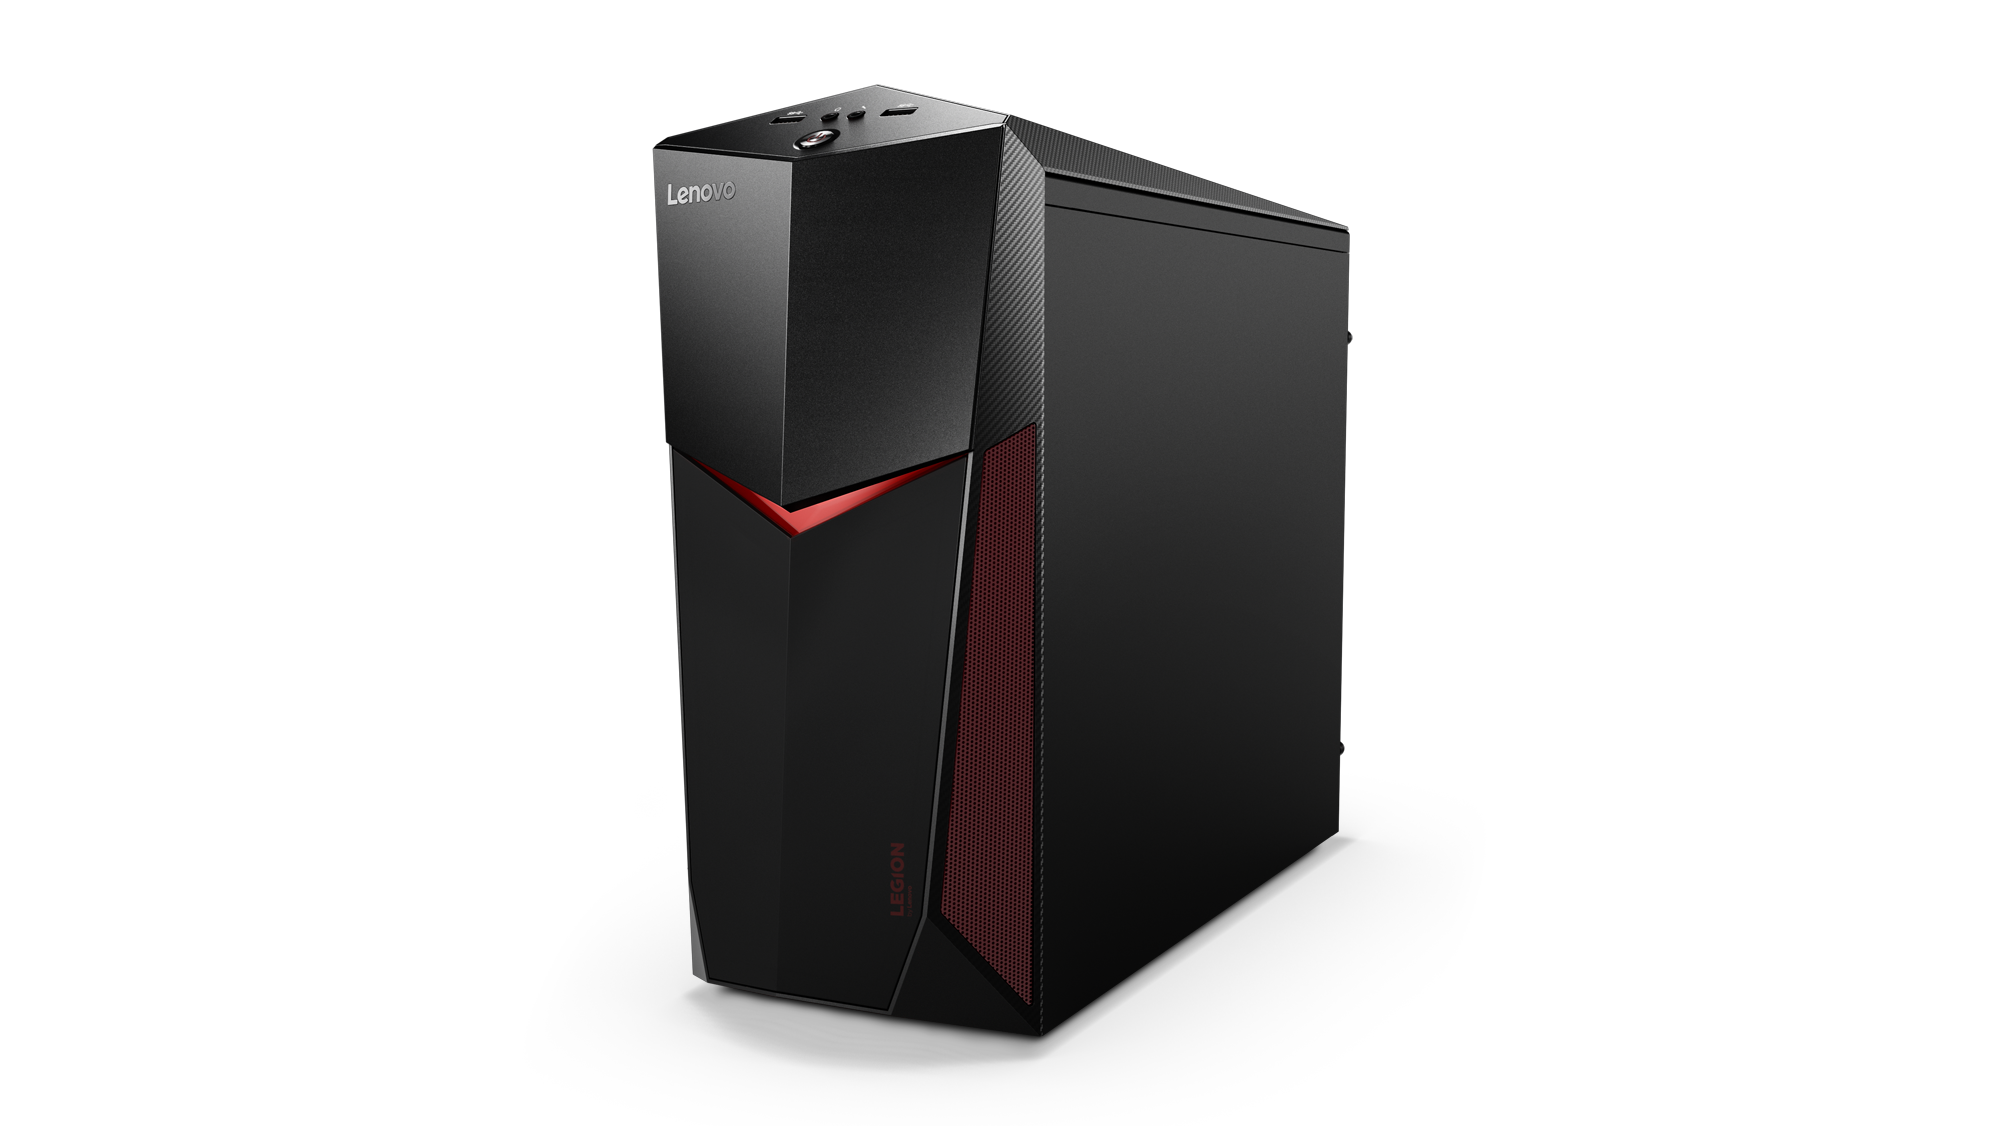 Lenovo Legion Y520T-25IKL ES i5-7400 3,50GHz/16GB/SSD 256GB+1TB HDD/GeForce 3GB/DVD-RW/TWR/36m ON-SITE/WIN10 90H7001EMK